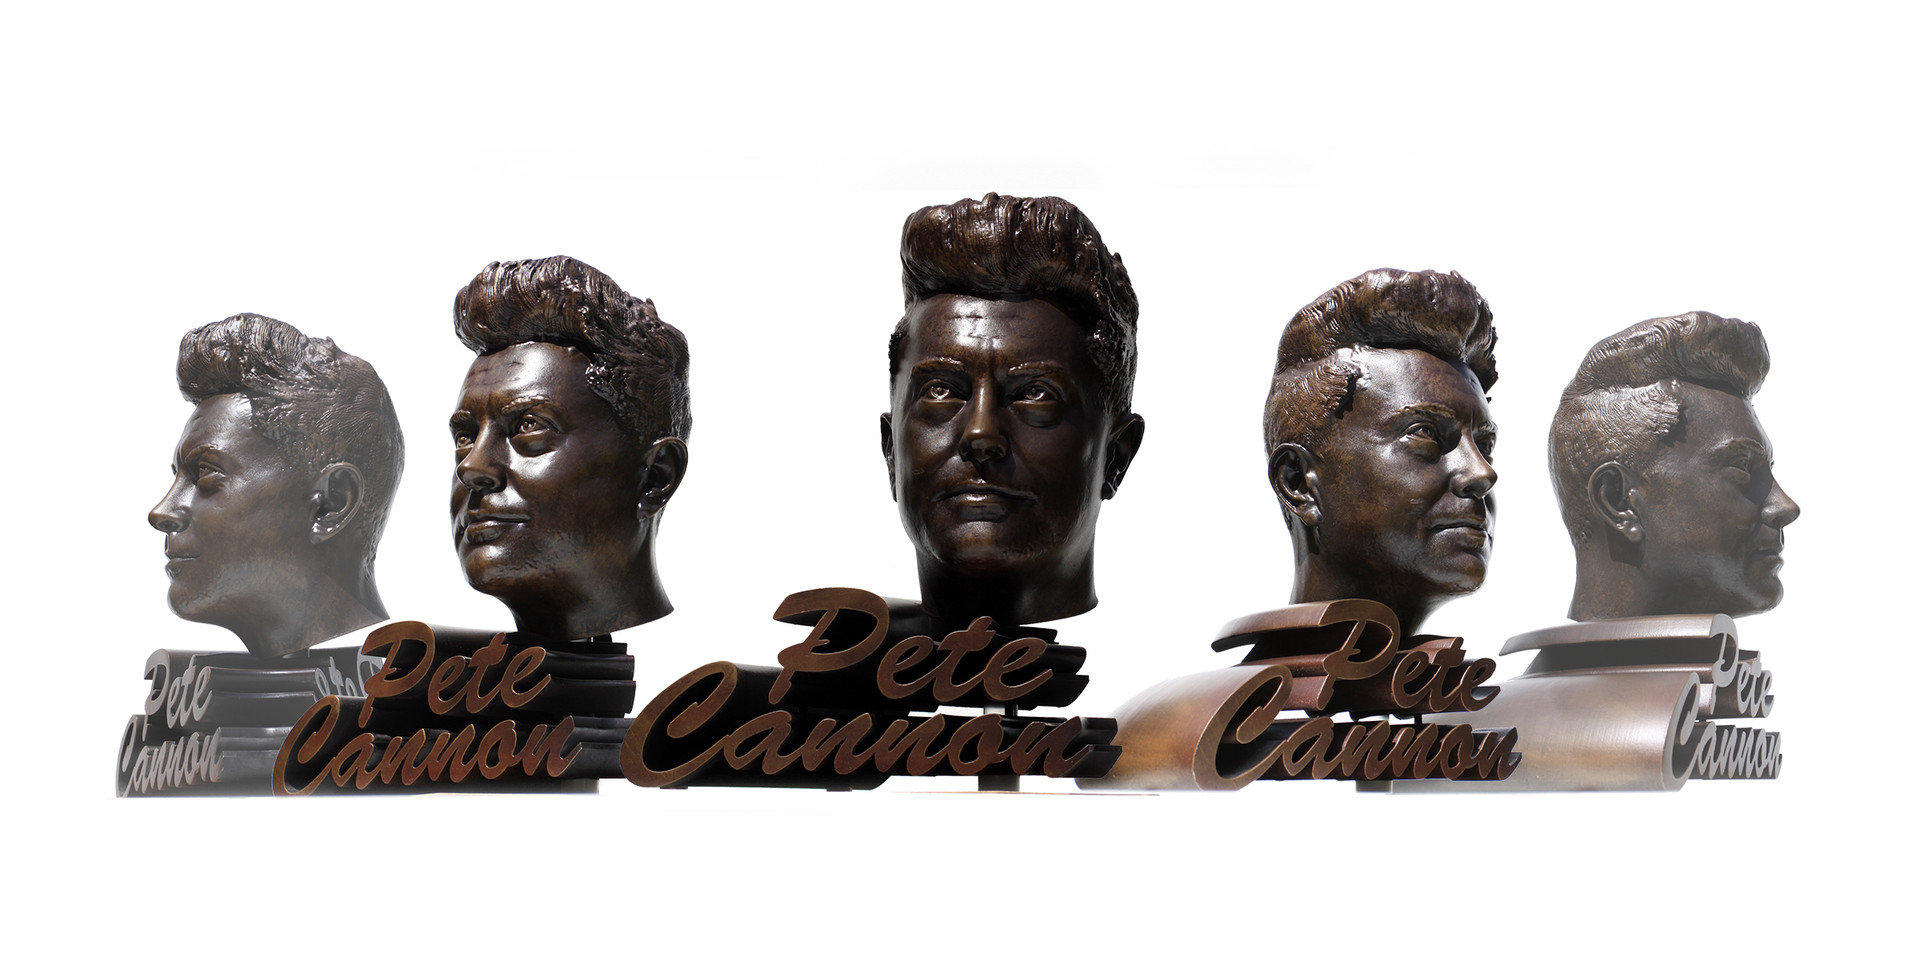 Pete Cannon bust